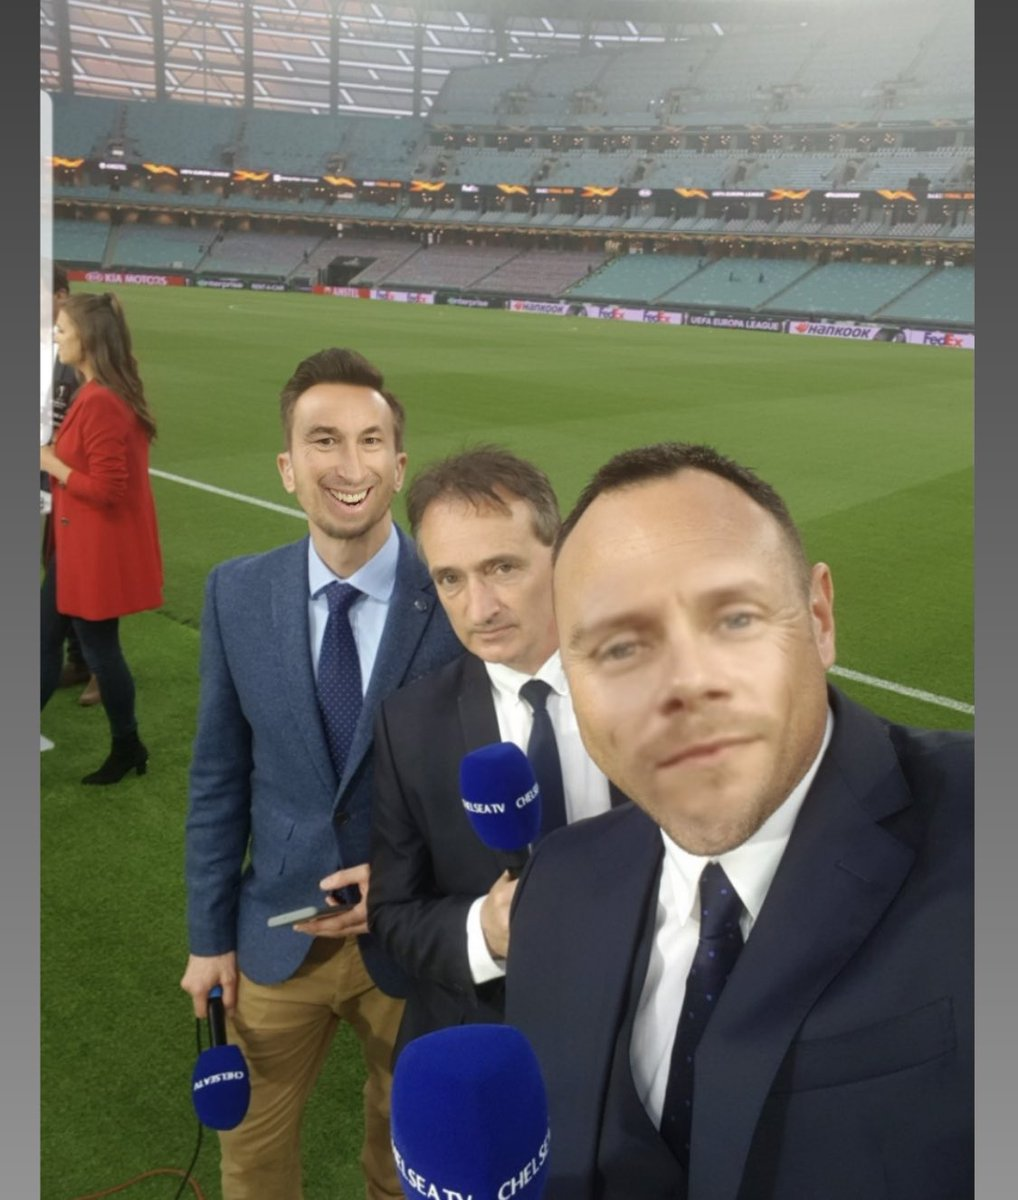 This version is better twitter.com/jasoncundy05/s…